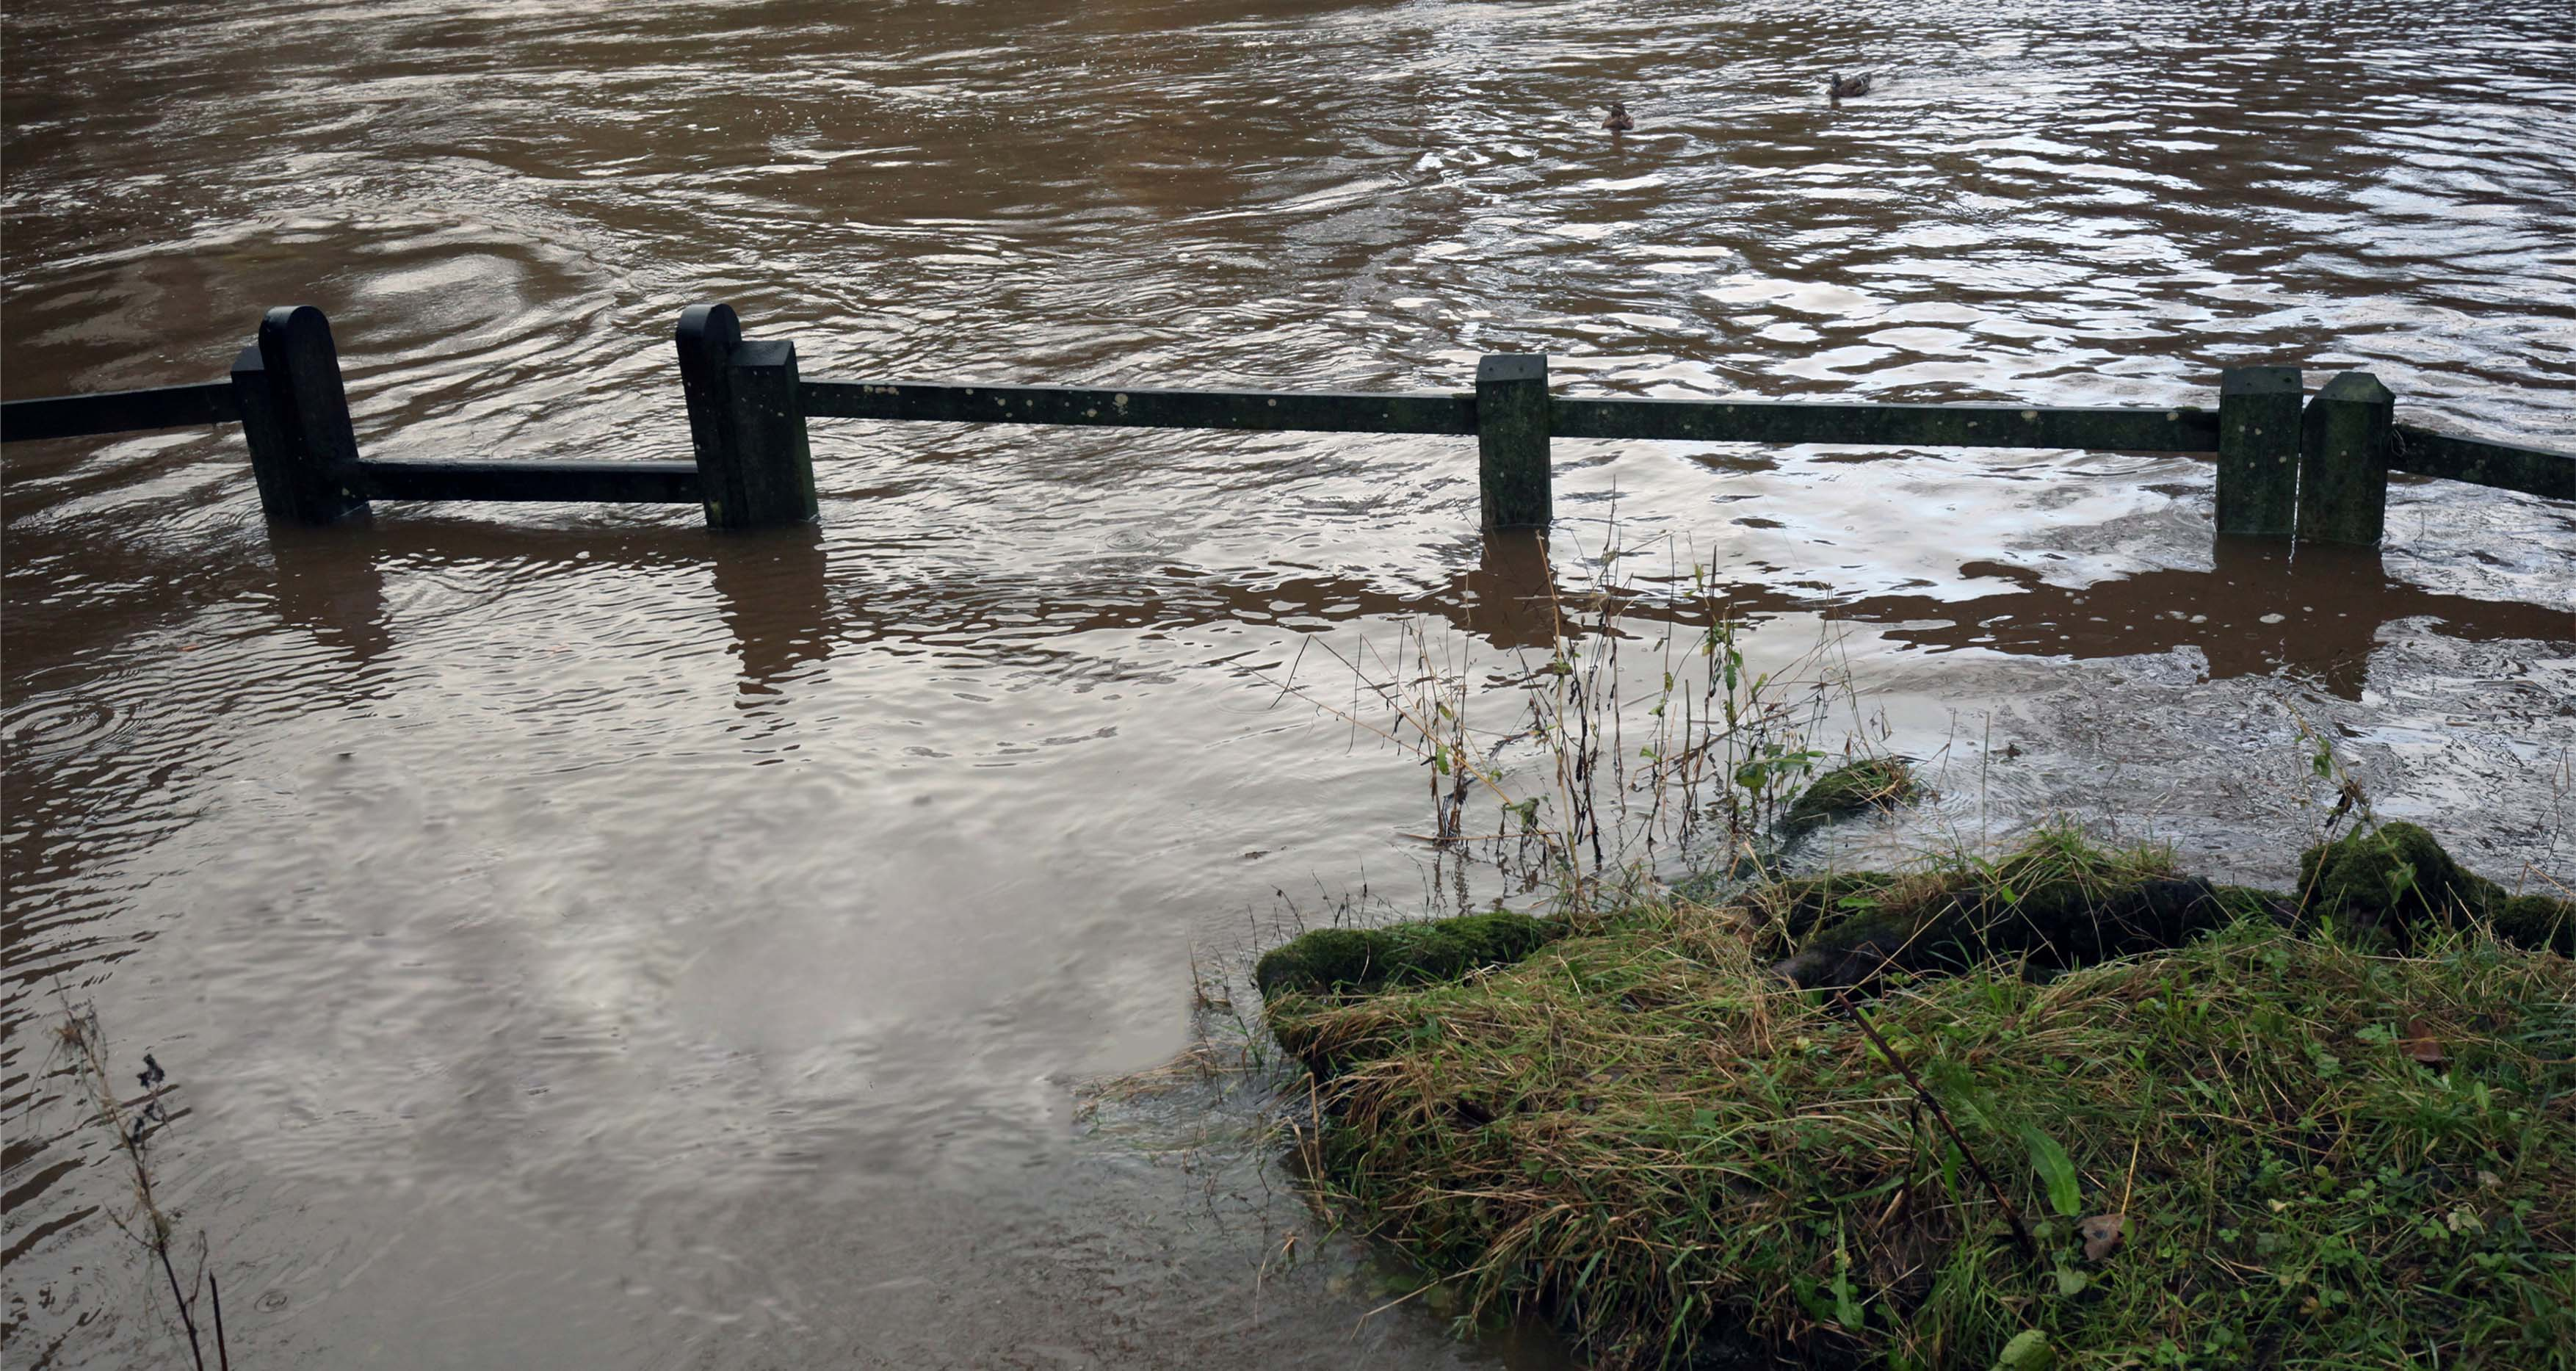 Flood waters in a field partially engulfing a fence